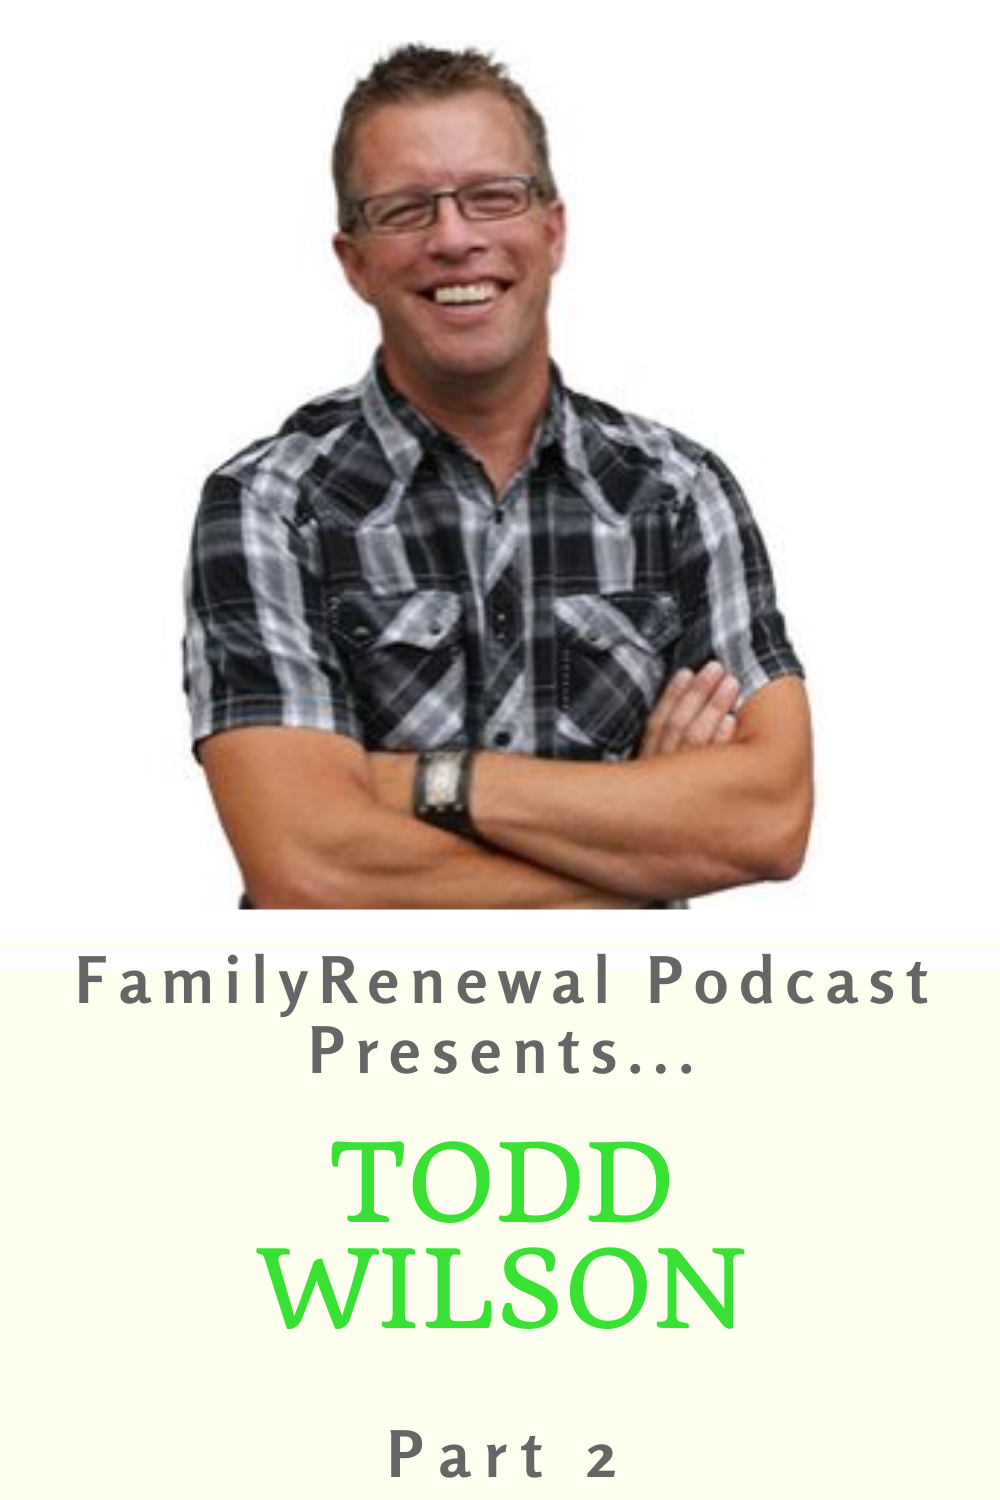 In part 2, Todd Wilson and Israel Wayne discuss mentoring, parenting teens, marriage and more.